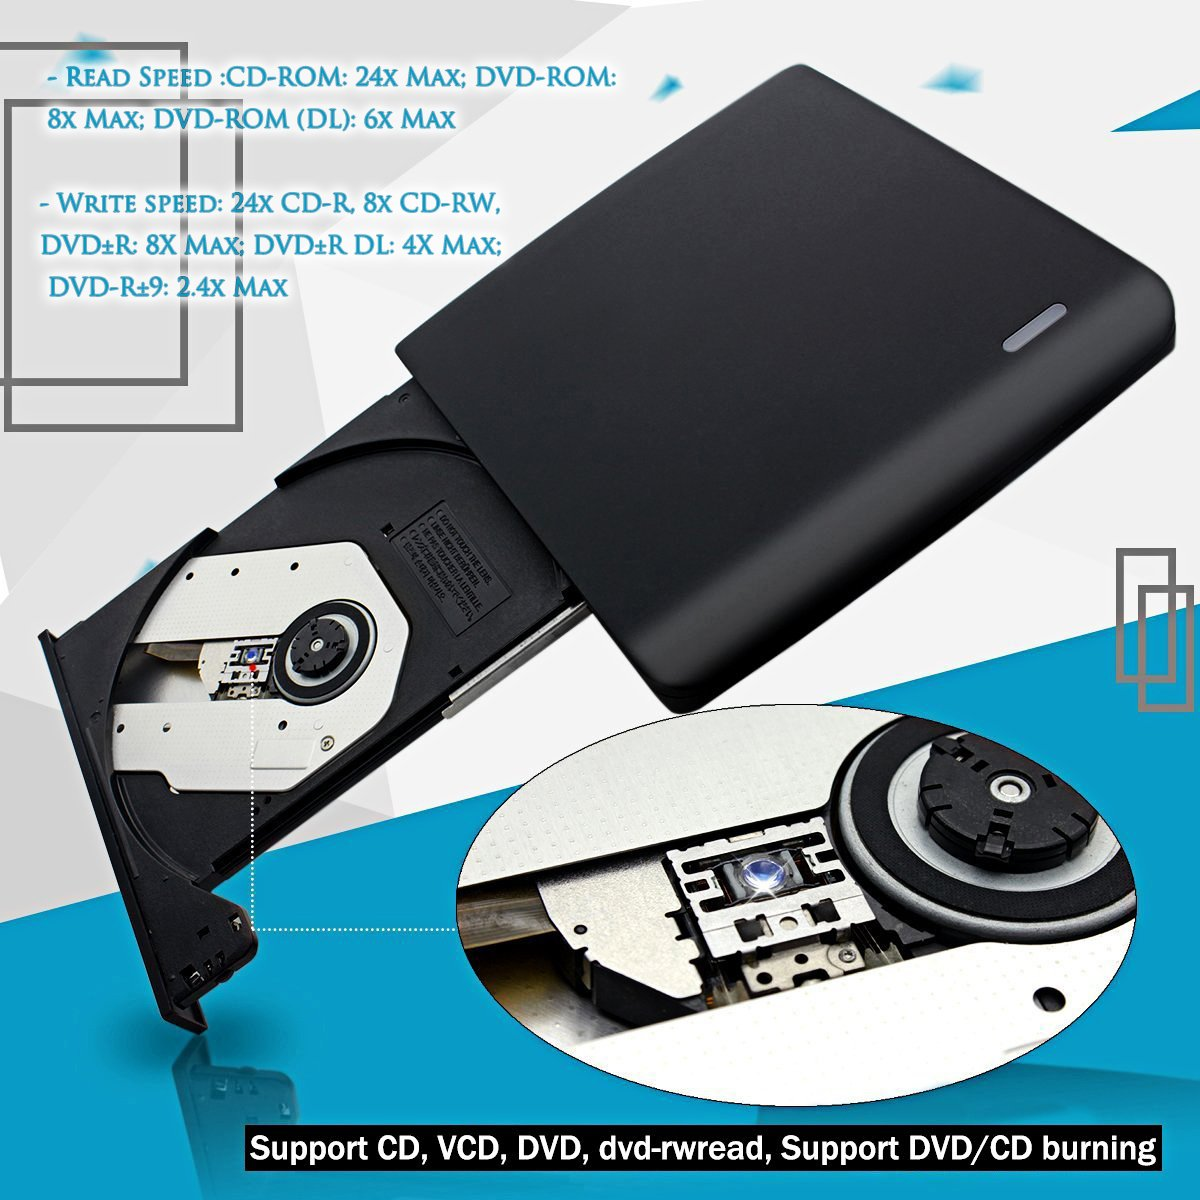 External CD/DVD Drive CD/DVD recorder, Portable CD DVD +/-RW Drive Slim DVD/CD Rom Rewriter Burner Writer, High Speed Data Transfer for Macbook Pro Laptop/Desktops Win 7/8.1/10 and Linux OS by Quartet trade (Image #4)